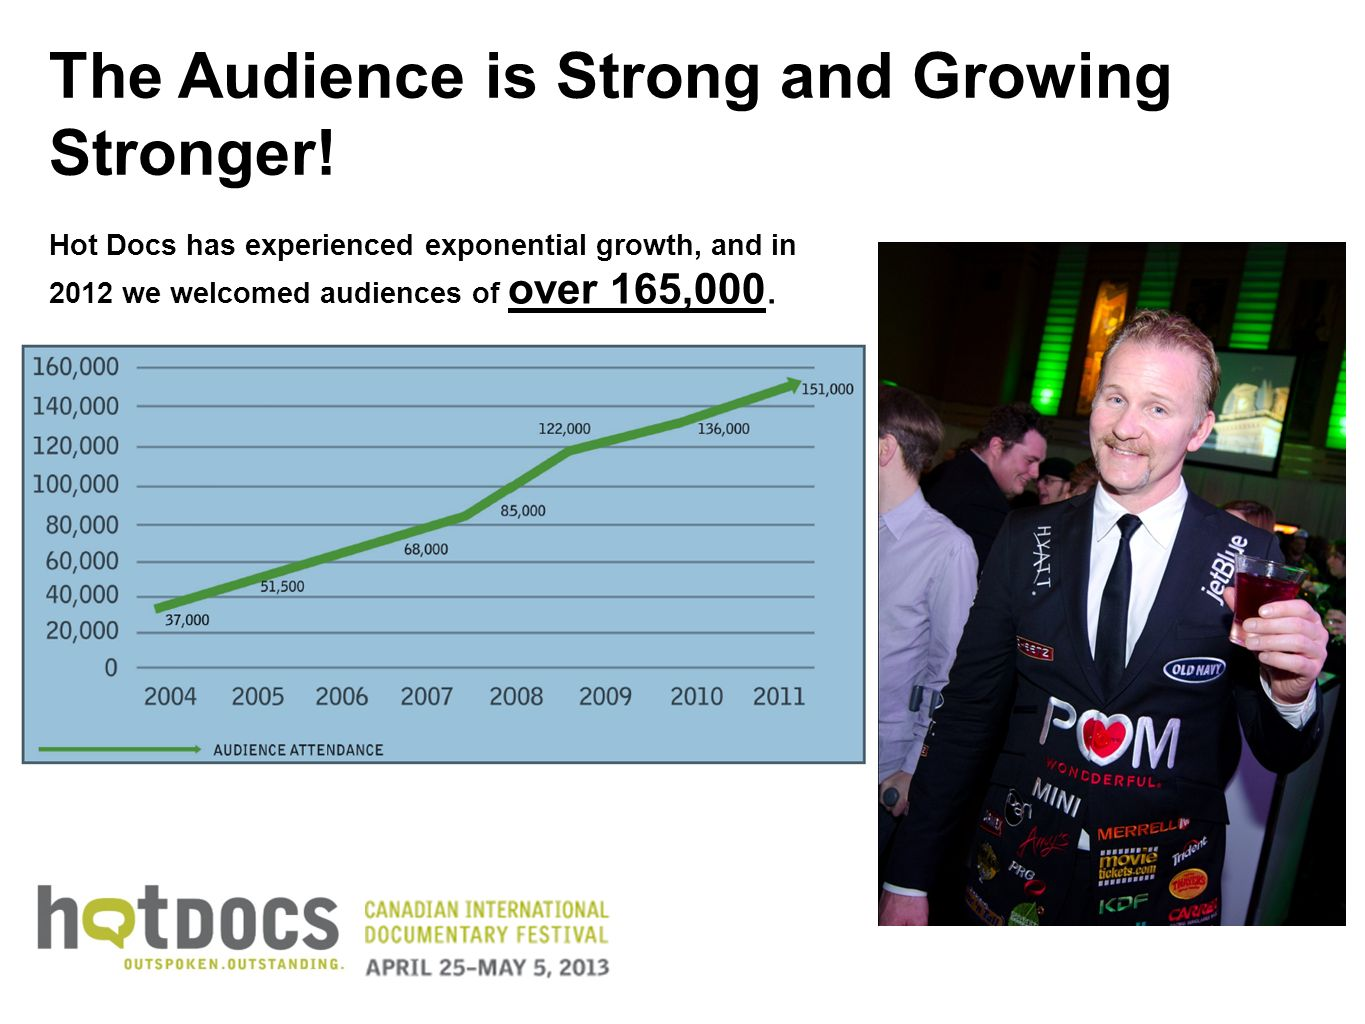 The Audience is Strong and Growing Stronger!